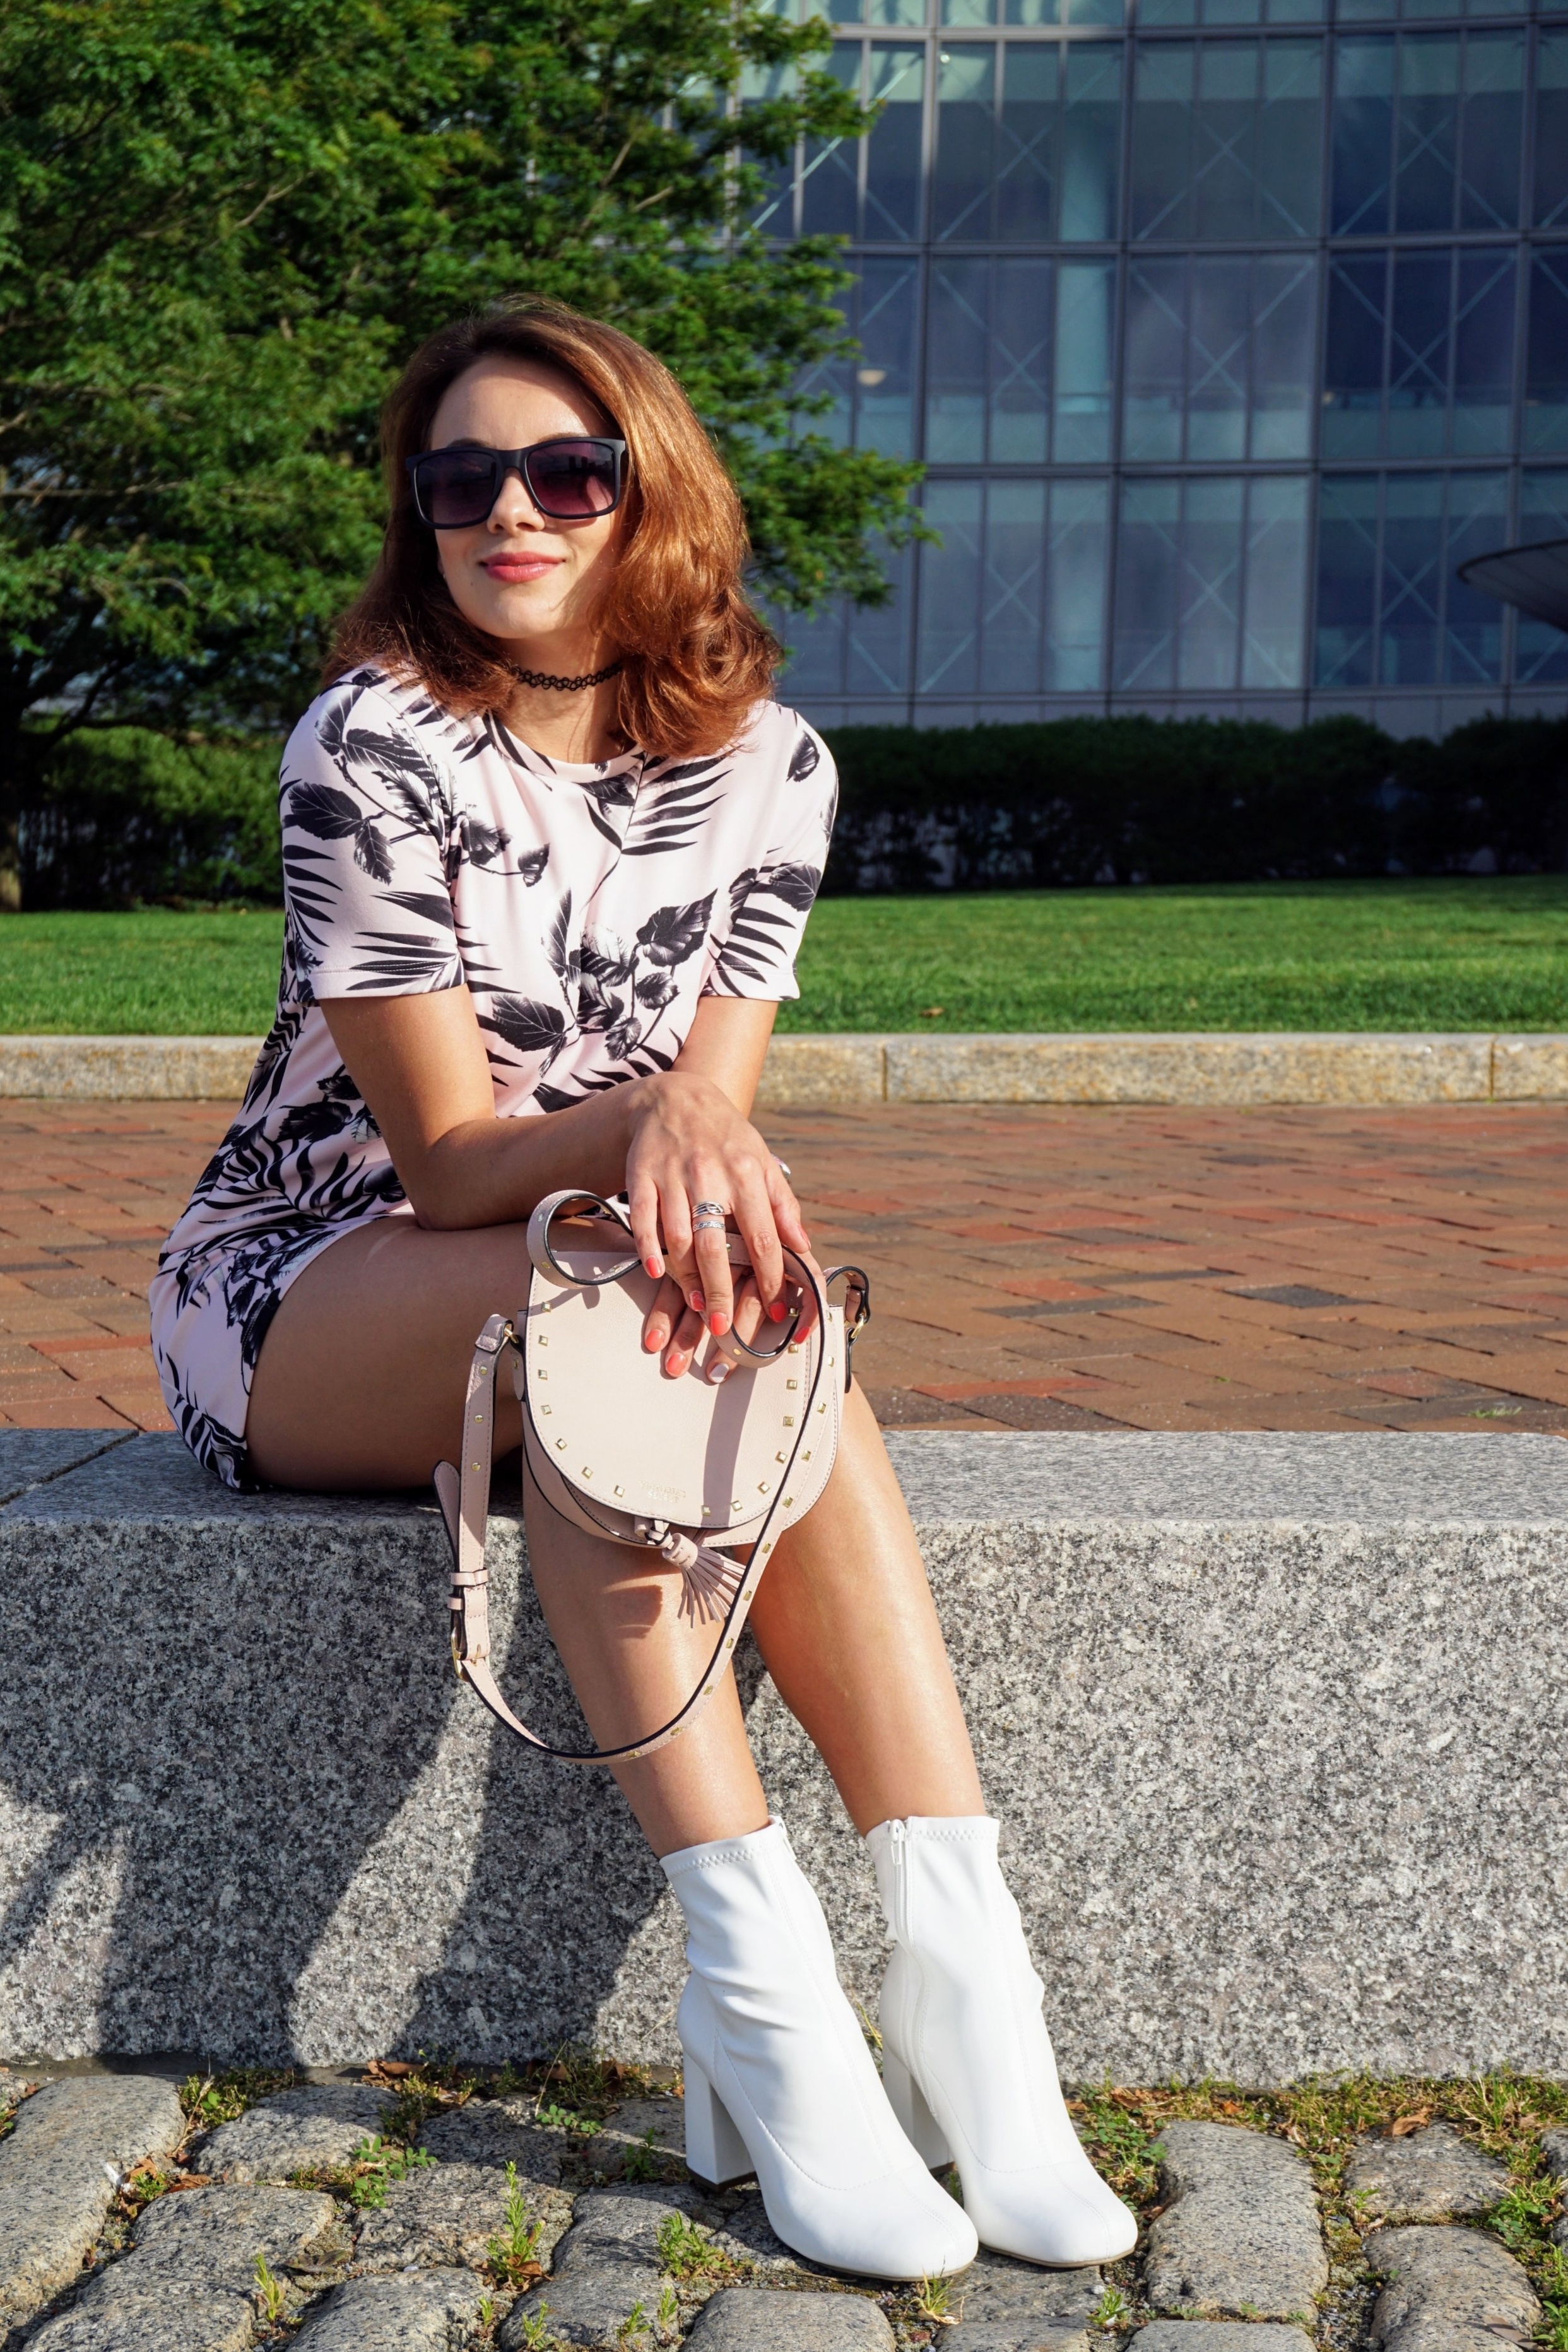 A fashion blogger sitting on the concrete bench, wearing a pink dress, white boots, and a pink victoria's secret bag.